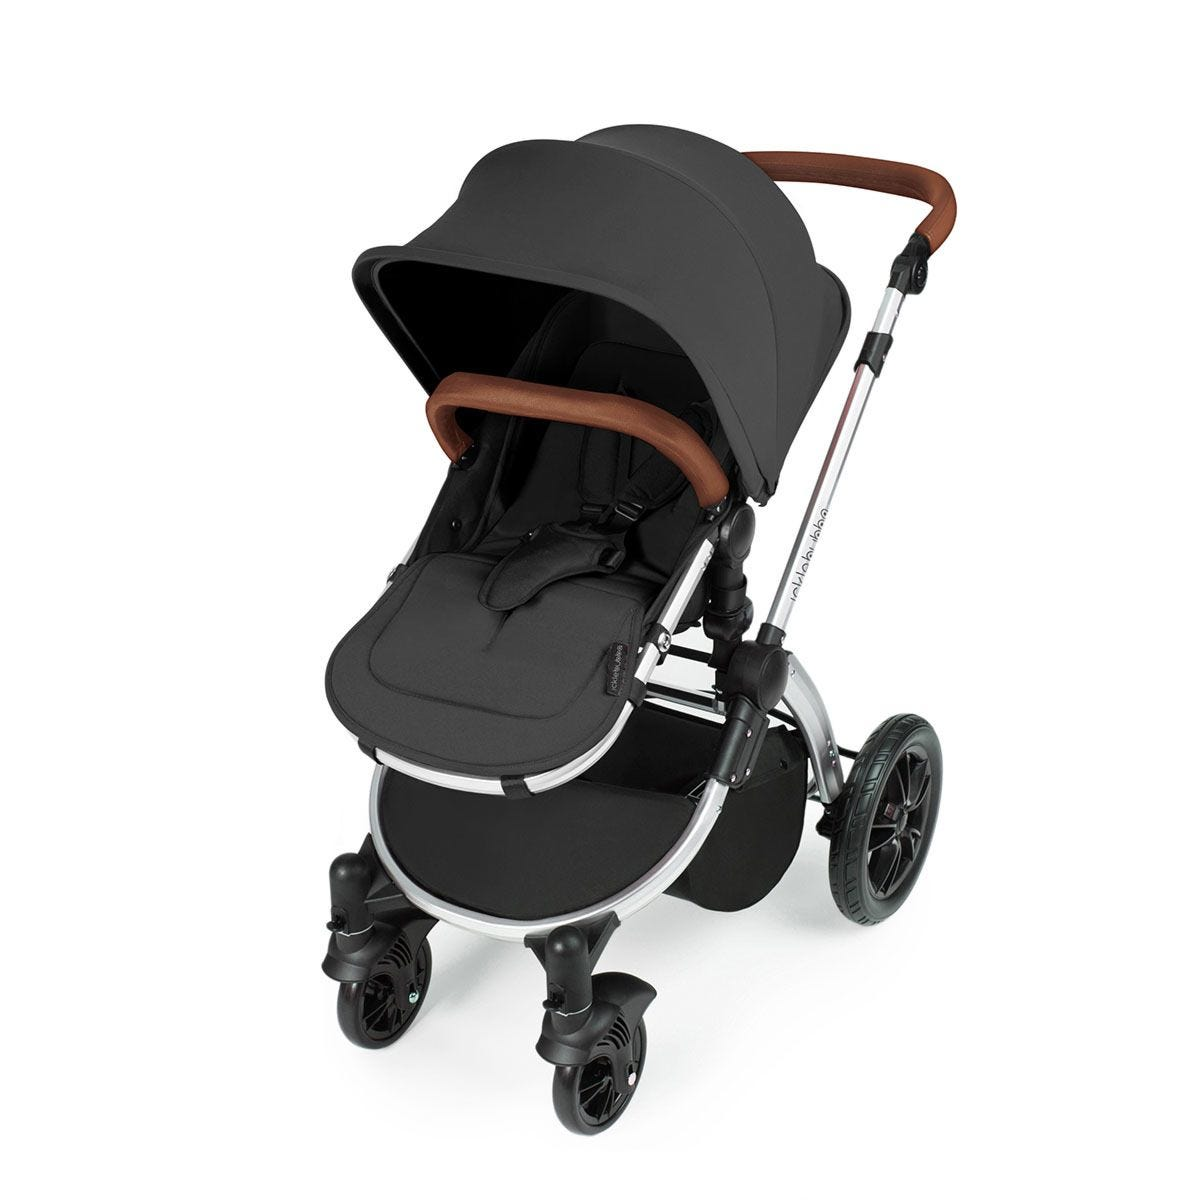 Ickle Bubba Stomp V3 All in One Travel System with Isofix Base - Graphite Grey on Silver with Tan Handles